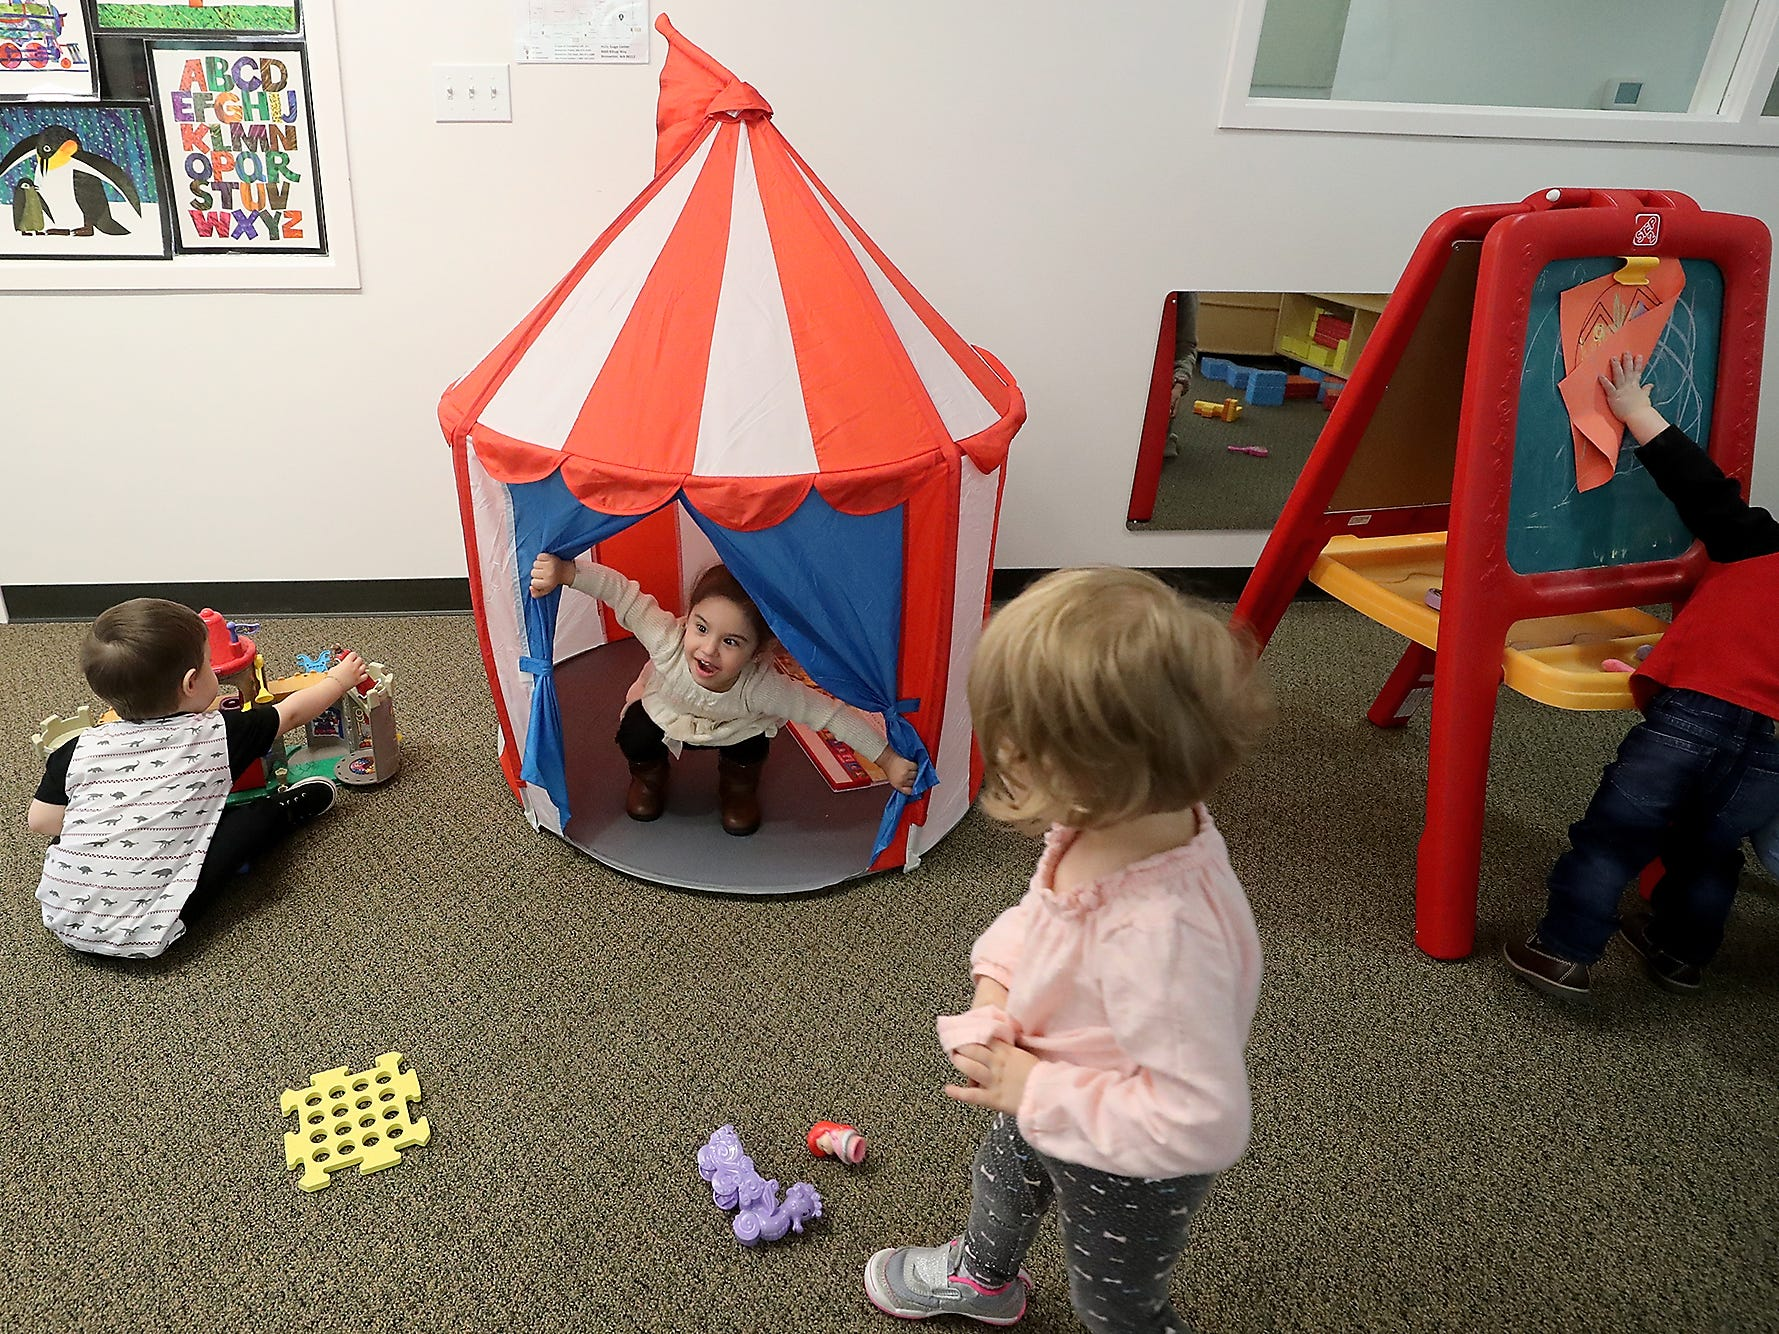 Rosalie Medina, 2, center, peeks out of a small circus tent while playing with classmates at Holly Ridge in Bremerton on Wednesday, April 16, 2019.